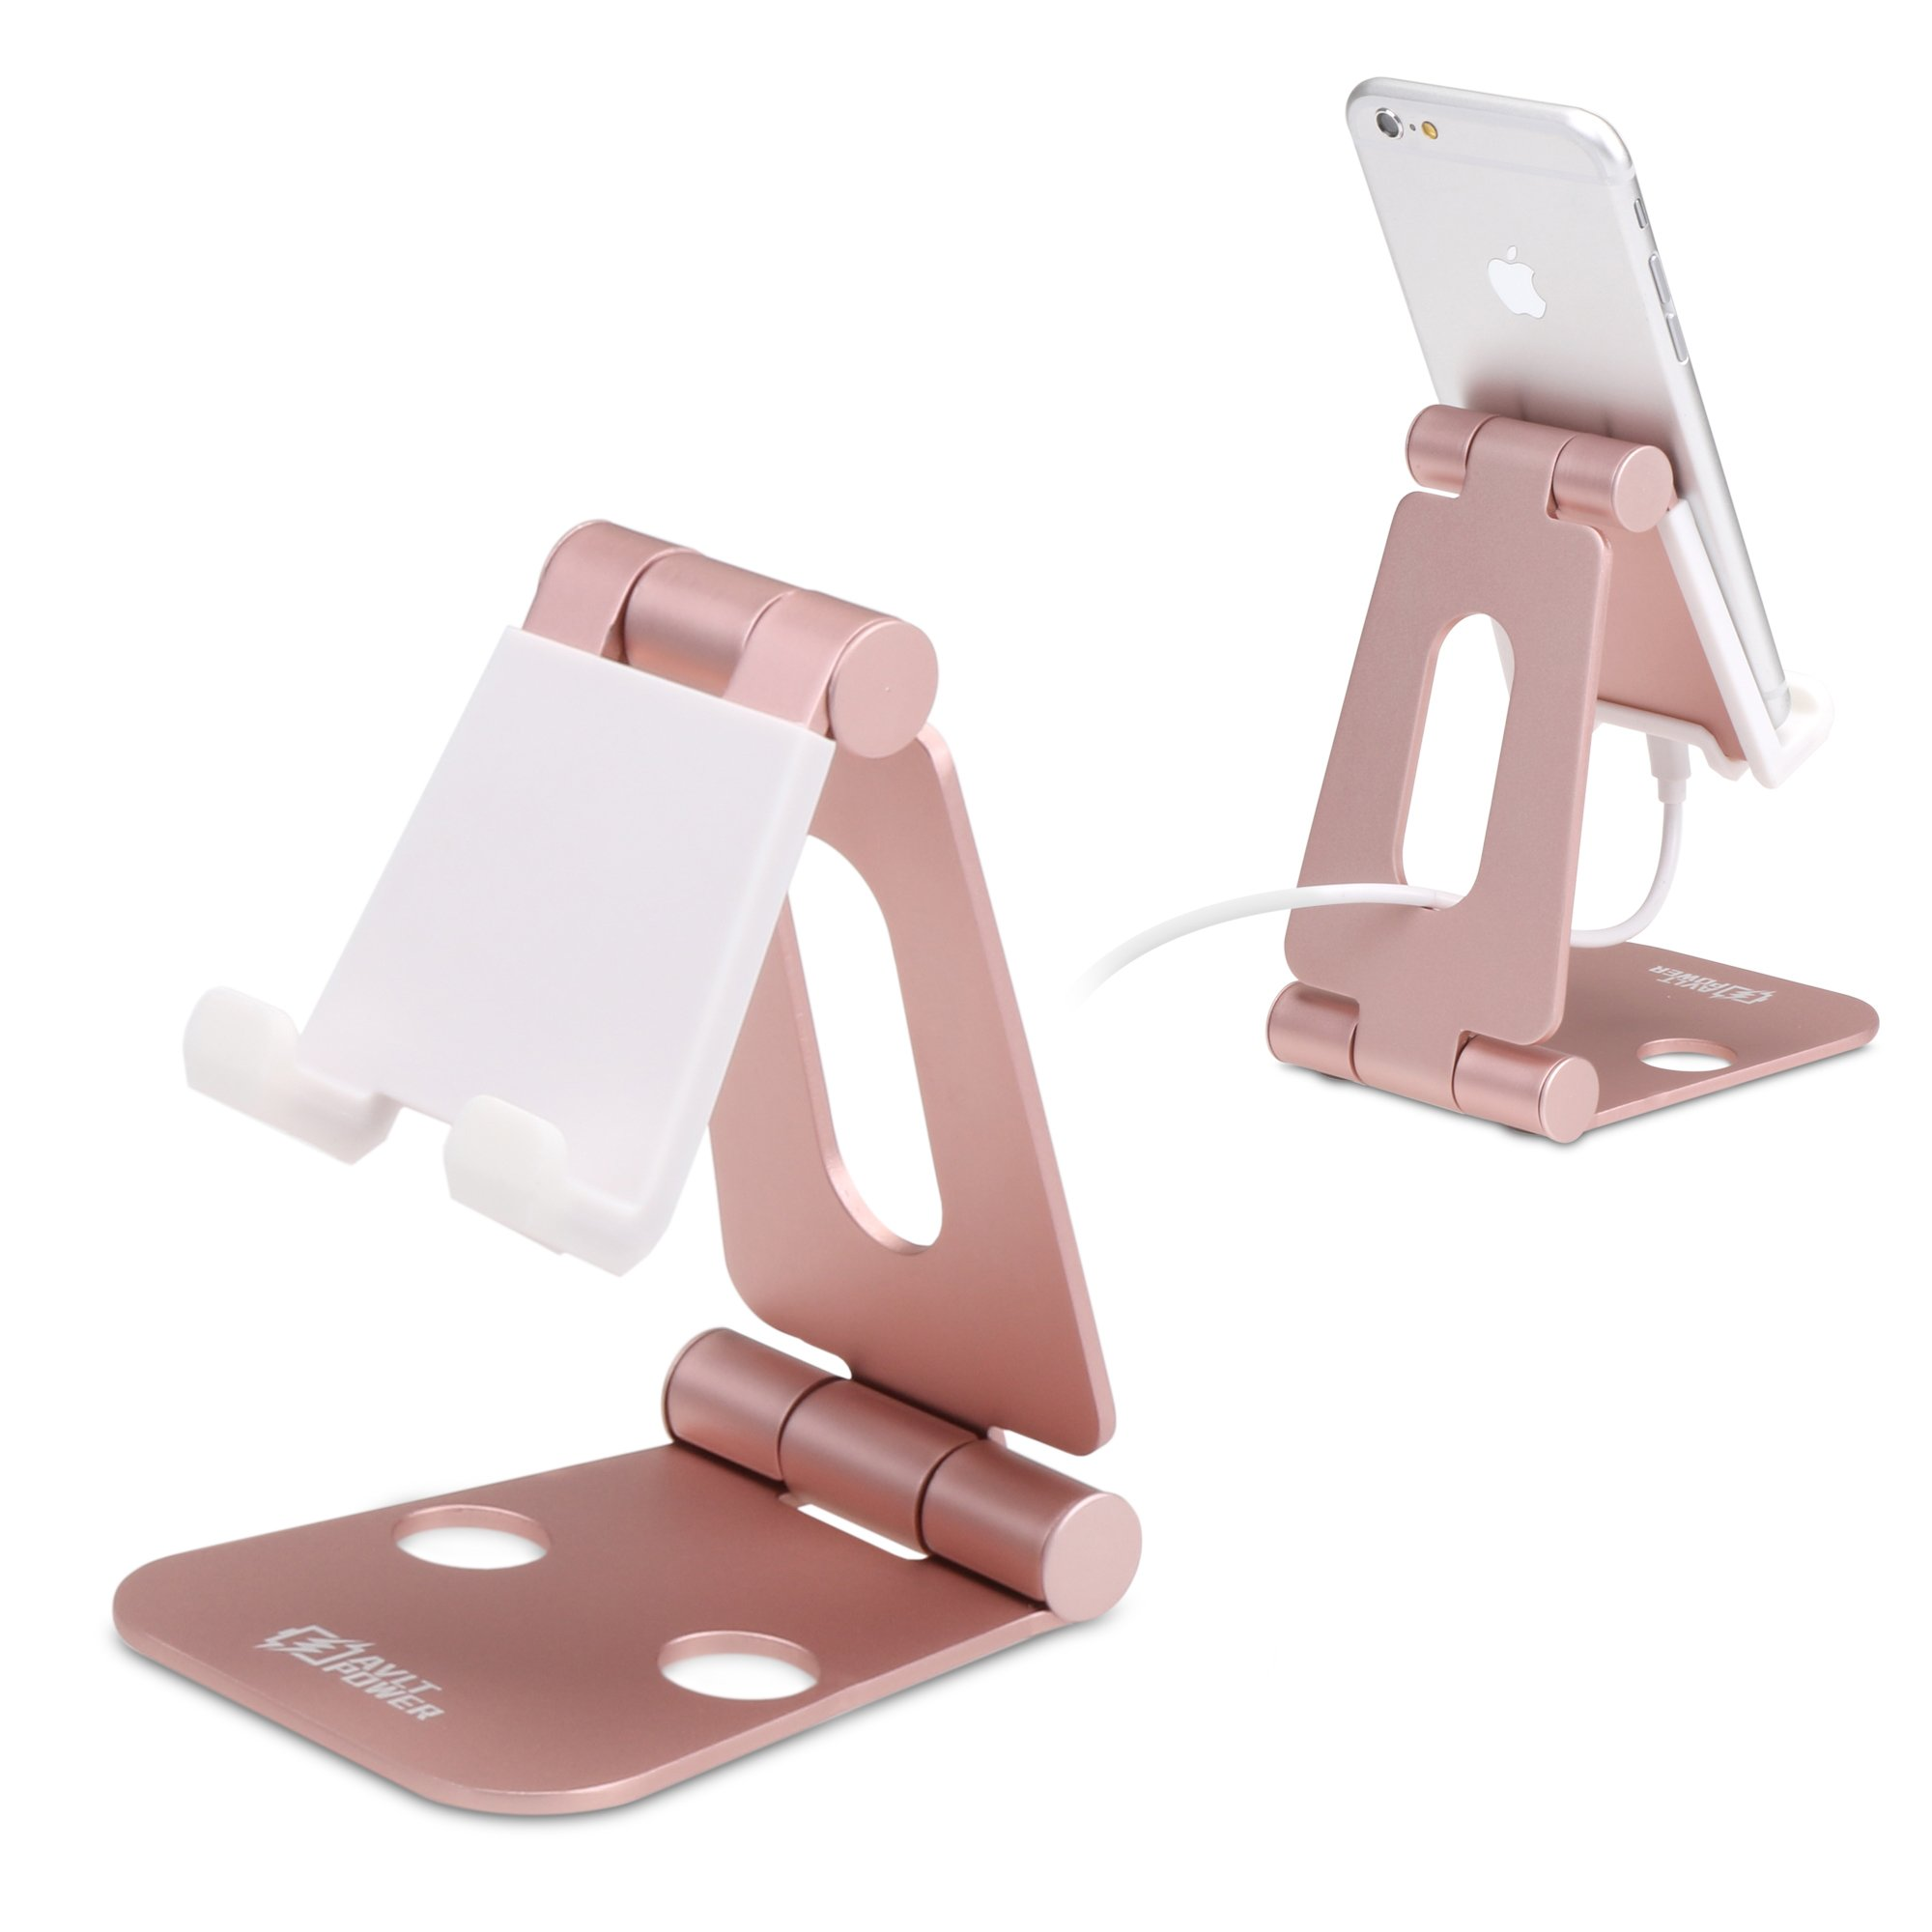 Sturdy Aluminum Phone Stand, AVLT-Power Foldable Multi Angle Phone and Tablet Holder- Portable & Adjustable Stand for Nintendo Switch, iPhone 7 6 Plus 5 5c, iPad & More by AVLT-Power (Image #1)